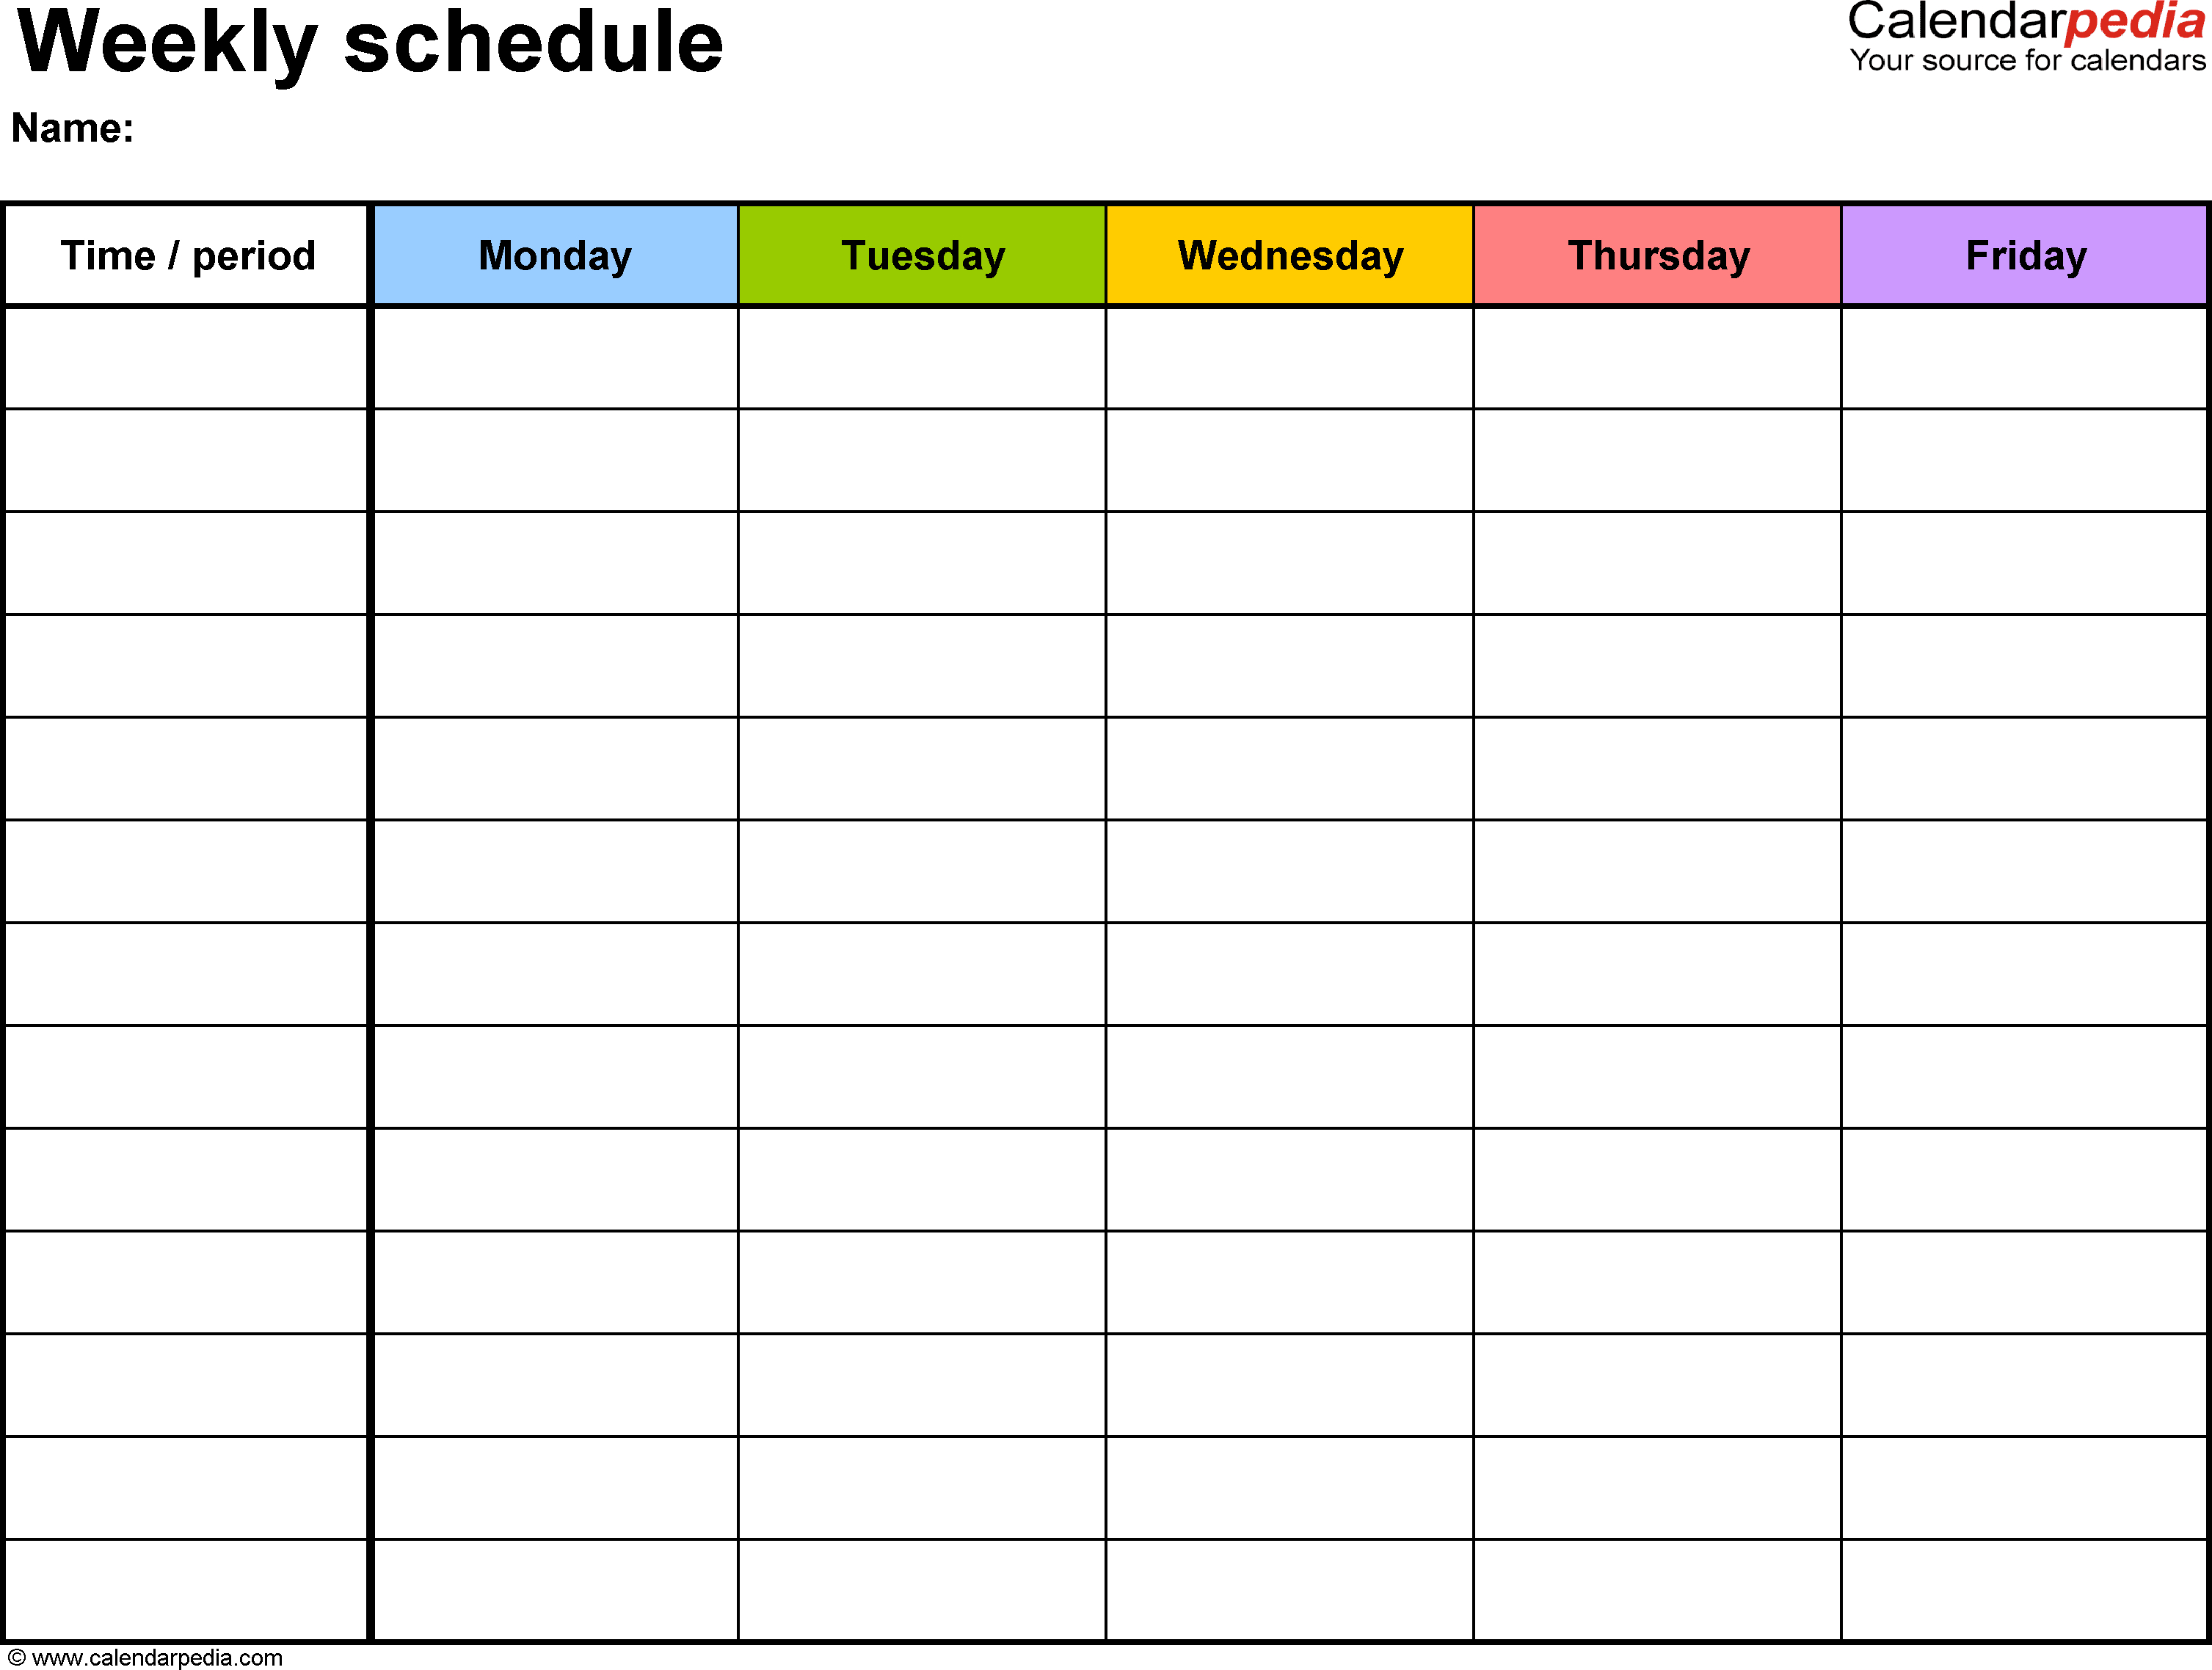 040 Free Online Calendar Template Ideas Weekly Schedule pertaining to Free Online Weekly Calendar